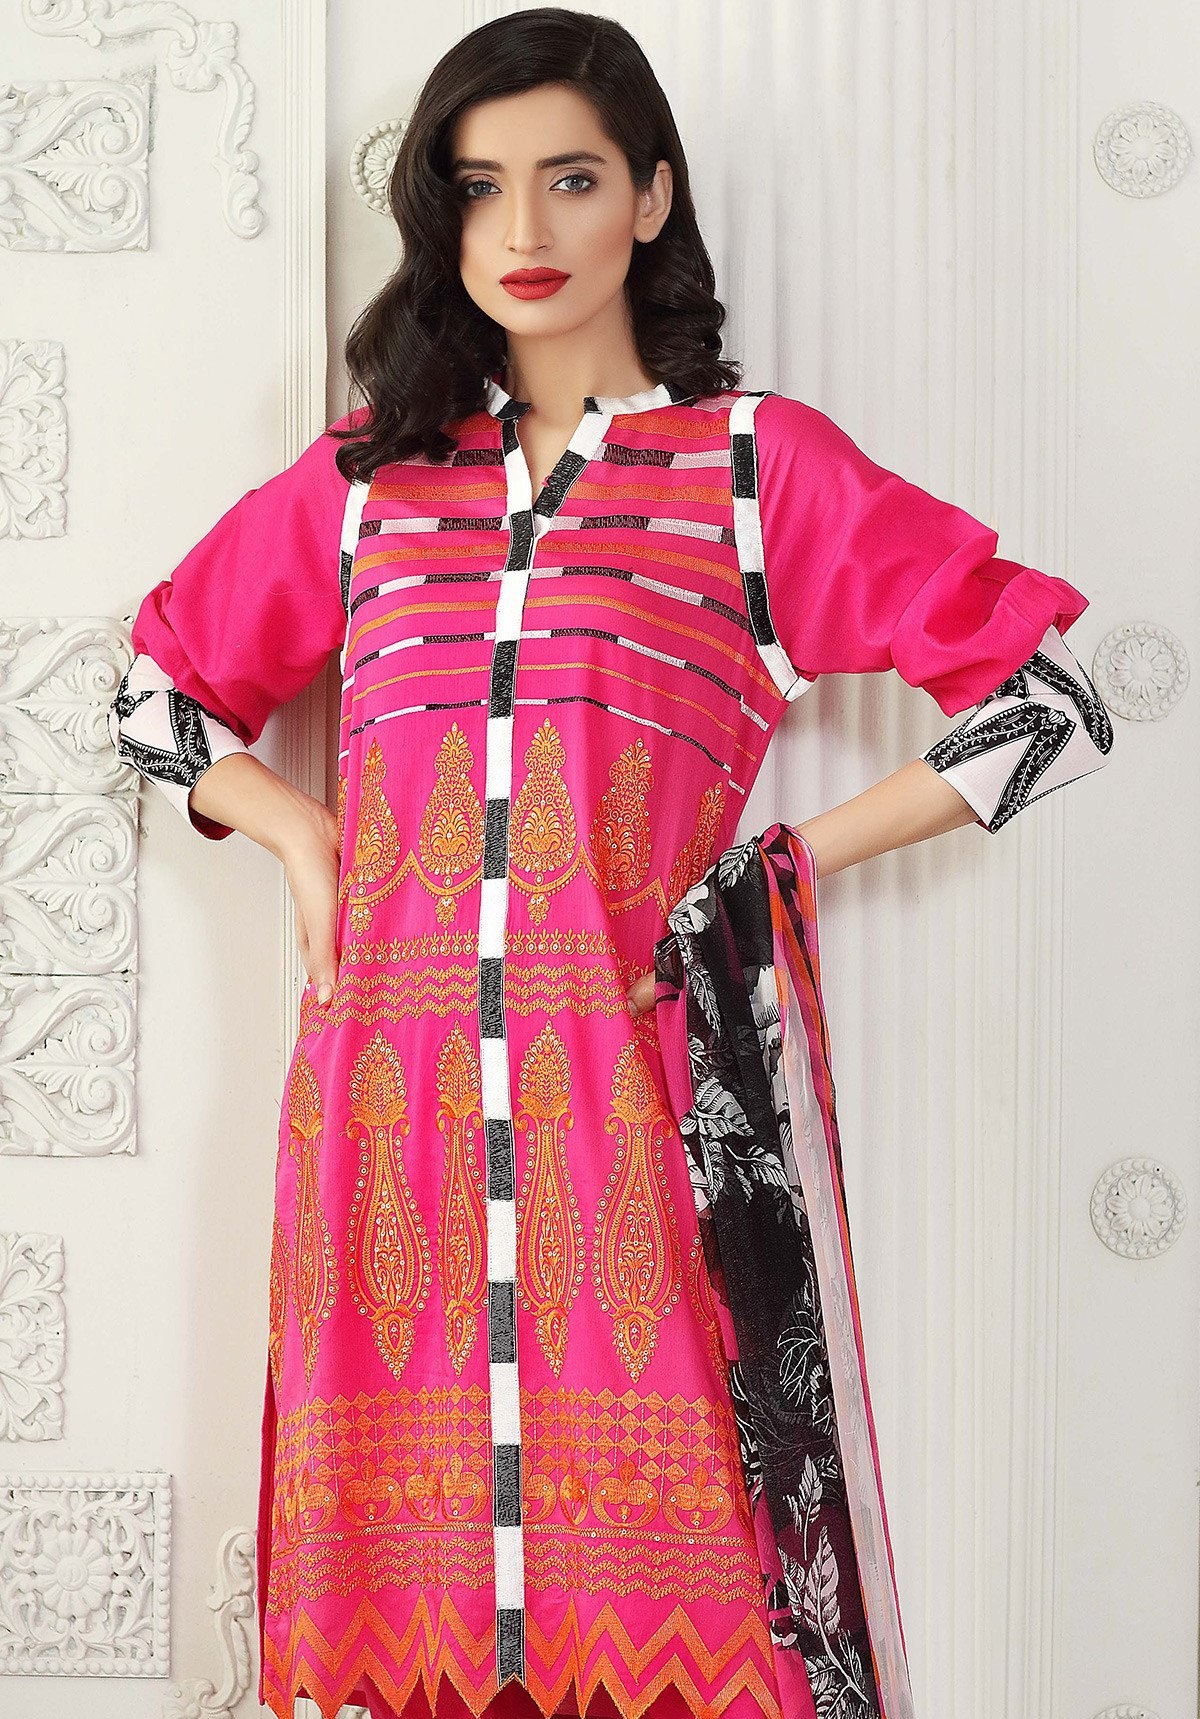 Gul Ahmed Shocking Pink Eid Outfit